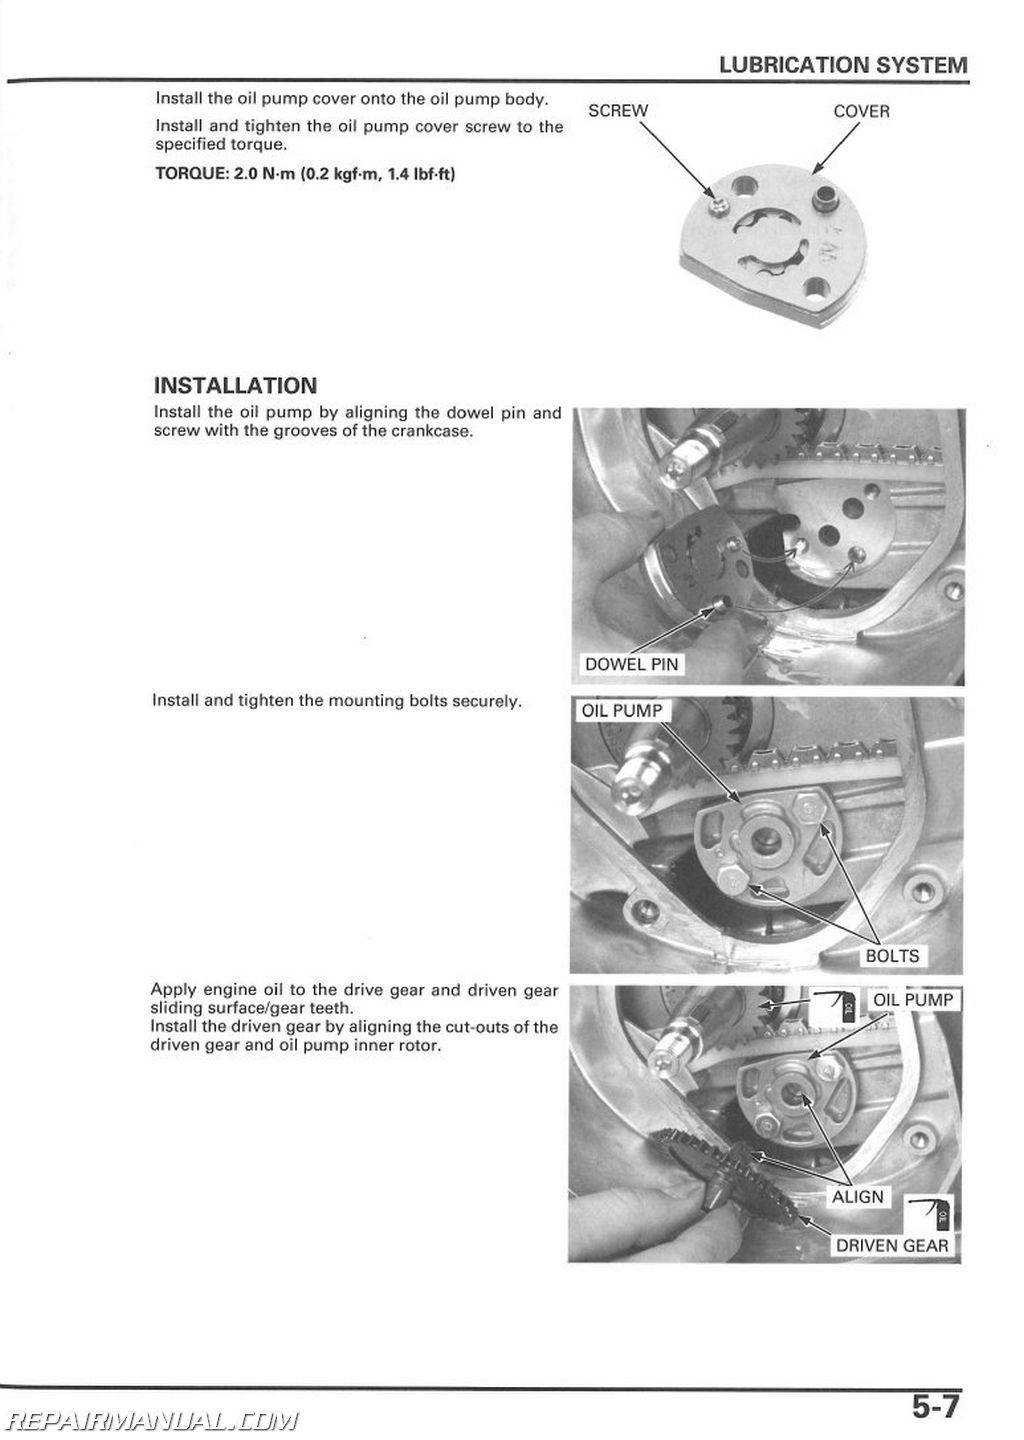 2004 Honda ruckus owners manual